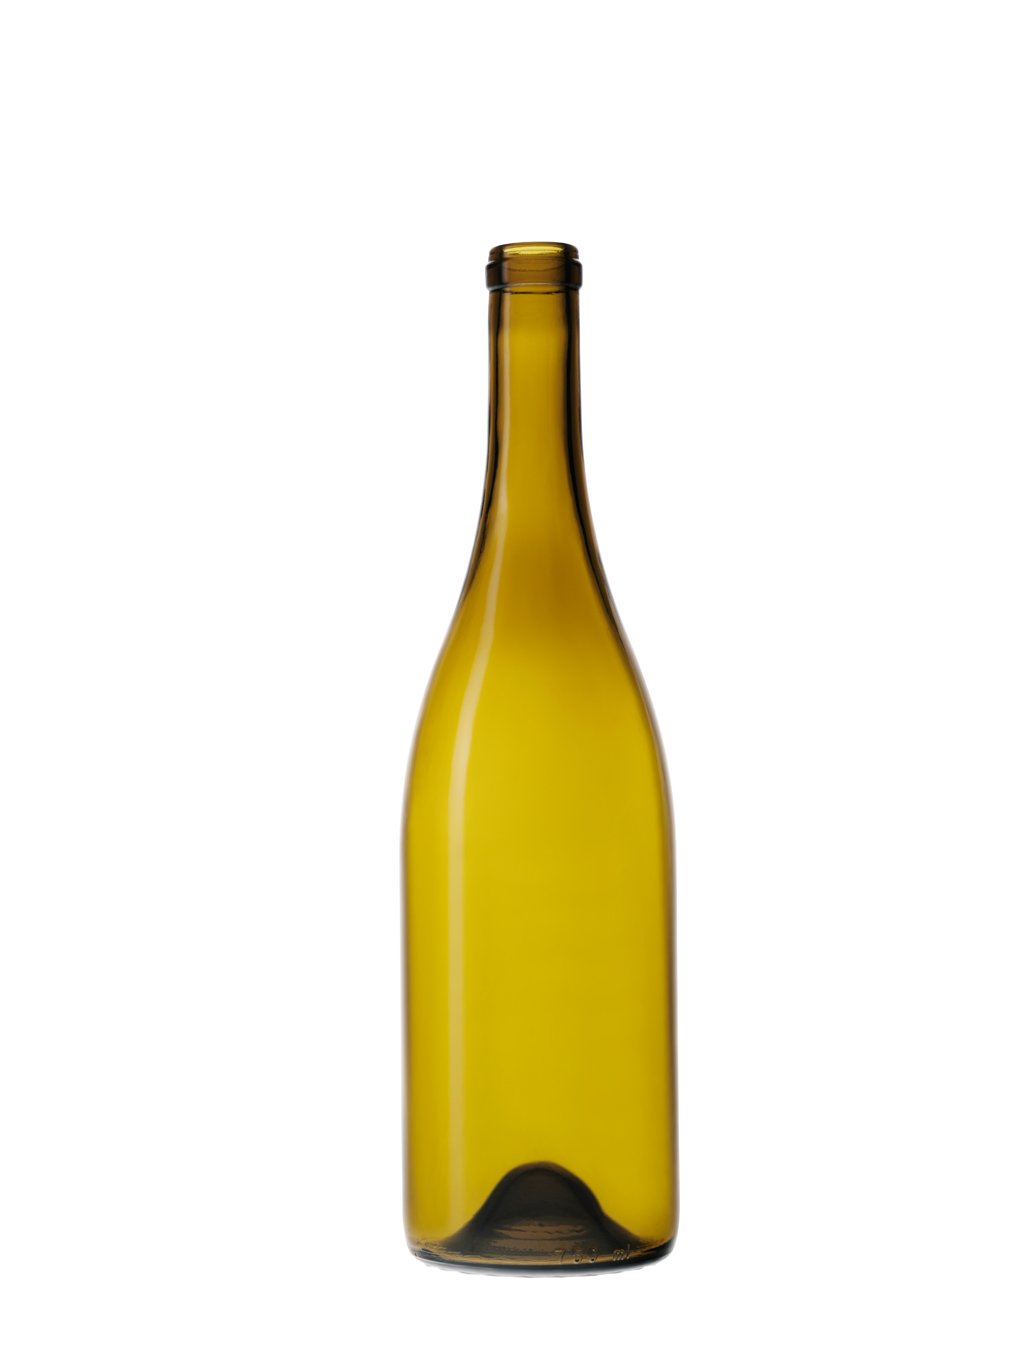 Evening Lands Seven Springs Chardonnay 2016